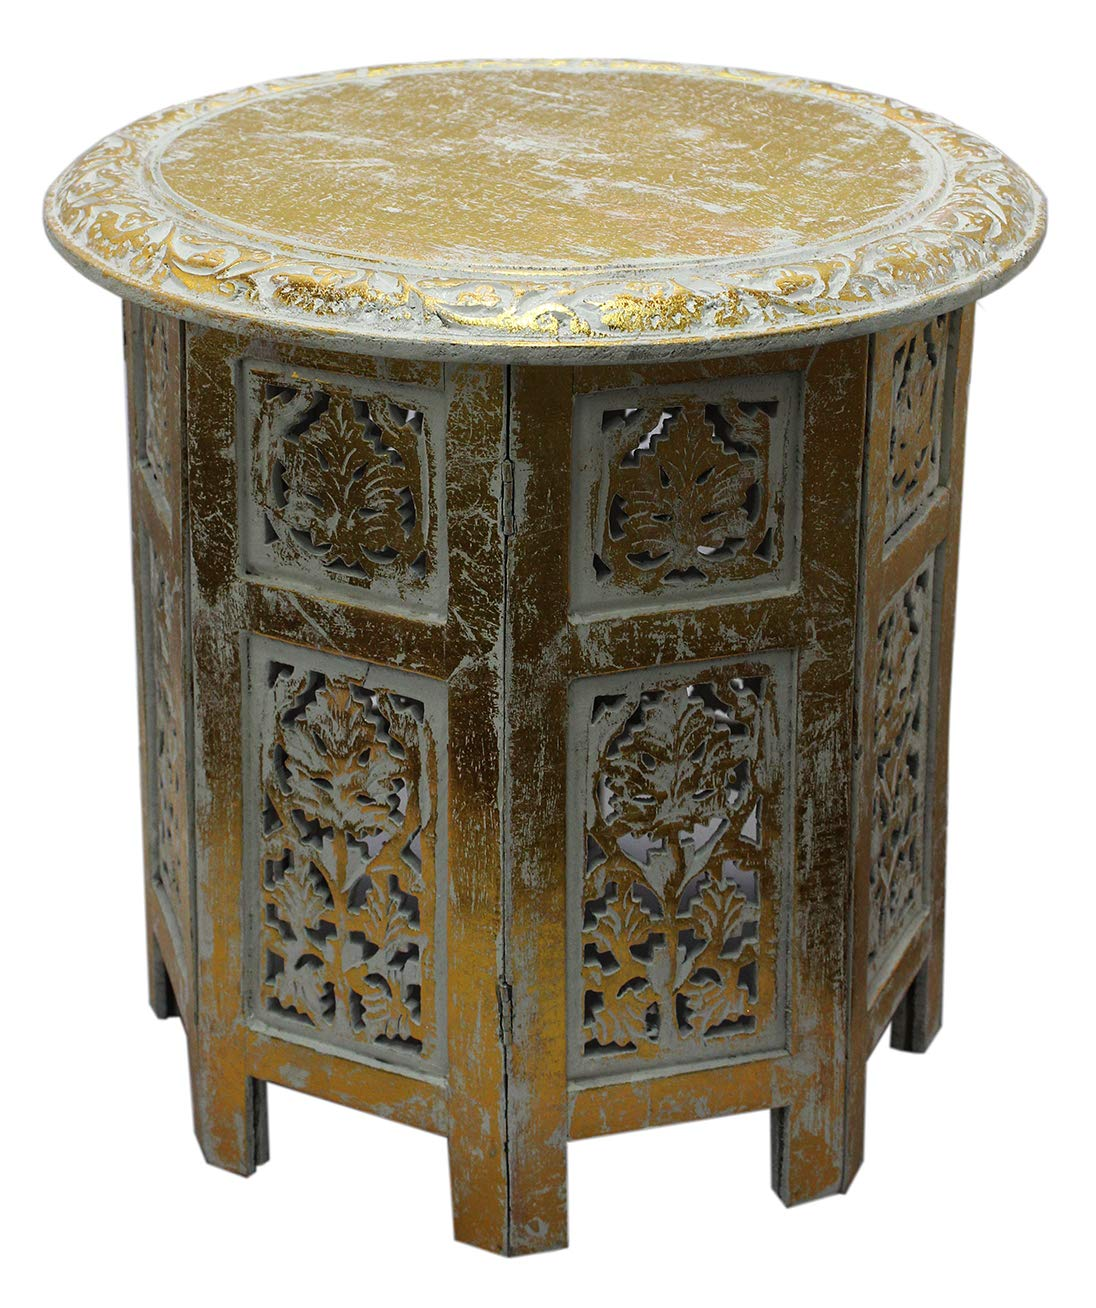 Cotton craft jaipur solid wood handcrafted carved folding accent coffee table antique gold and white 18 inch round top x 18 inch high intricate detail